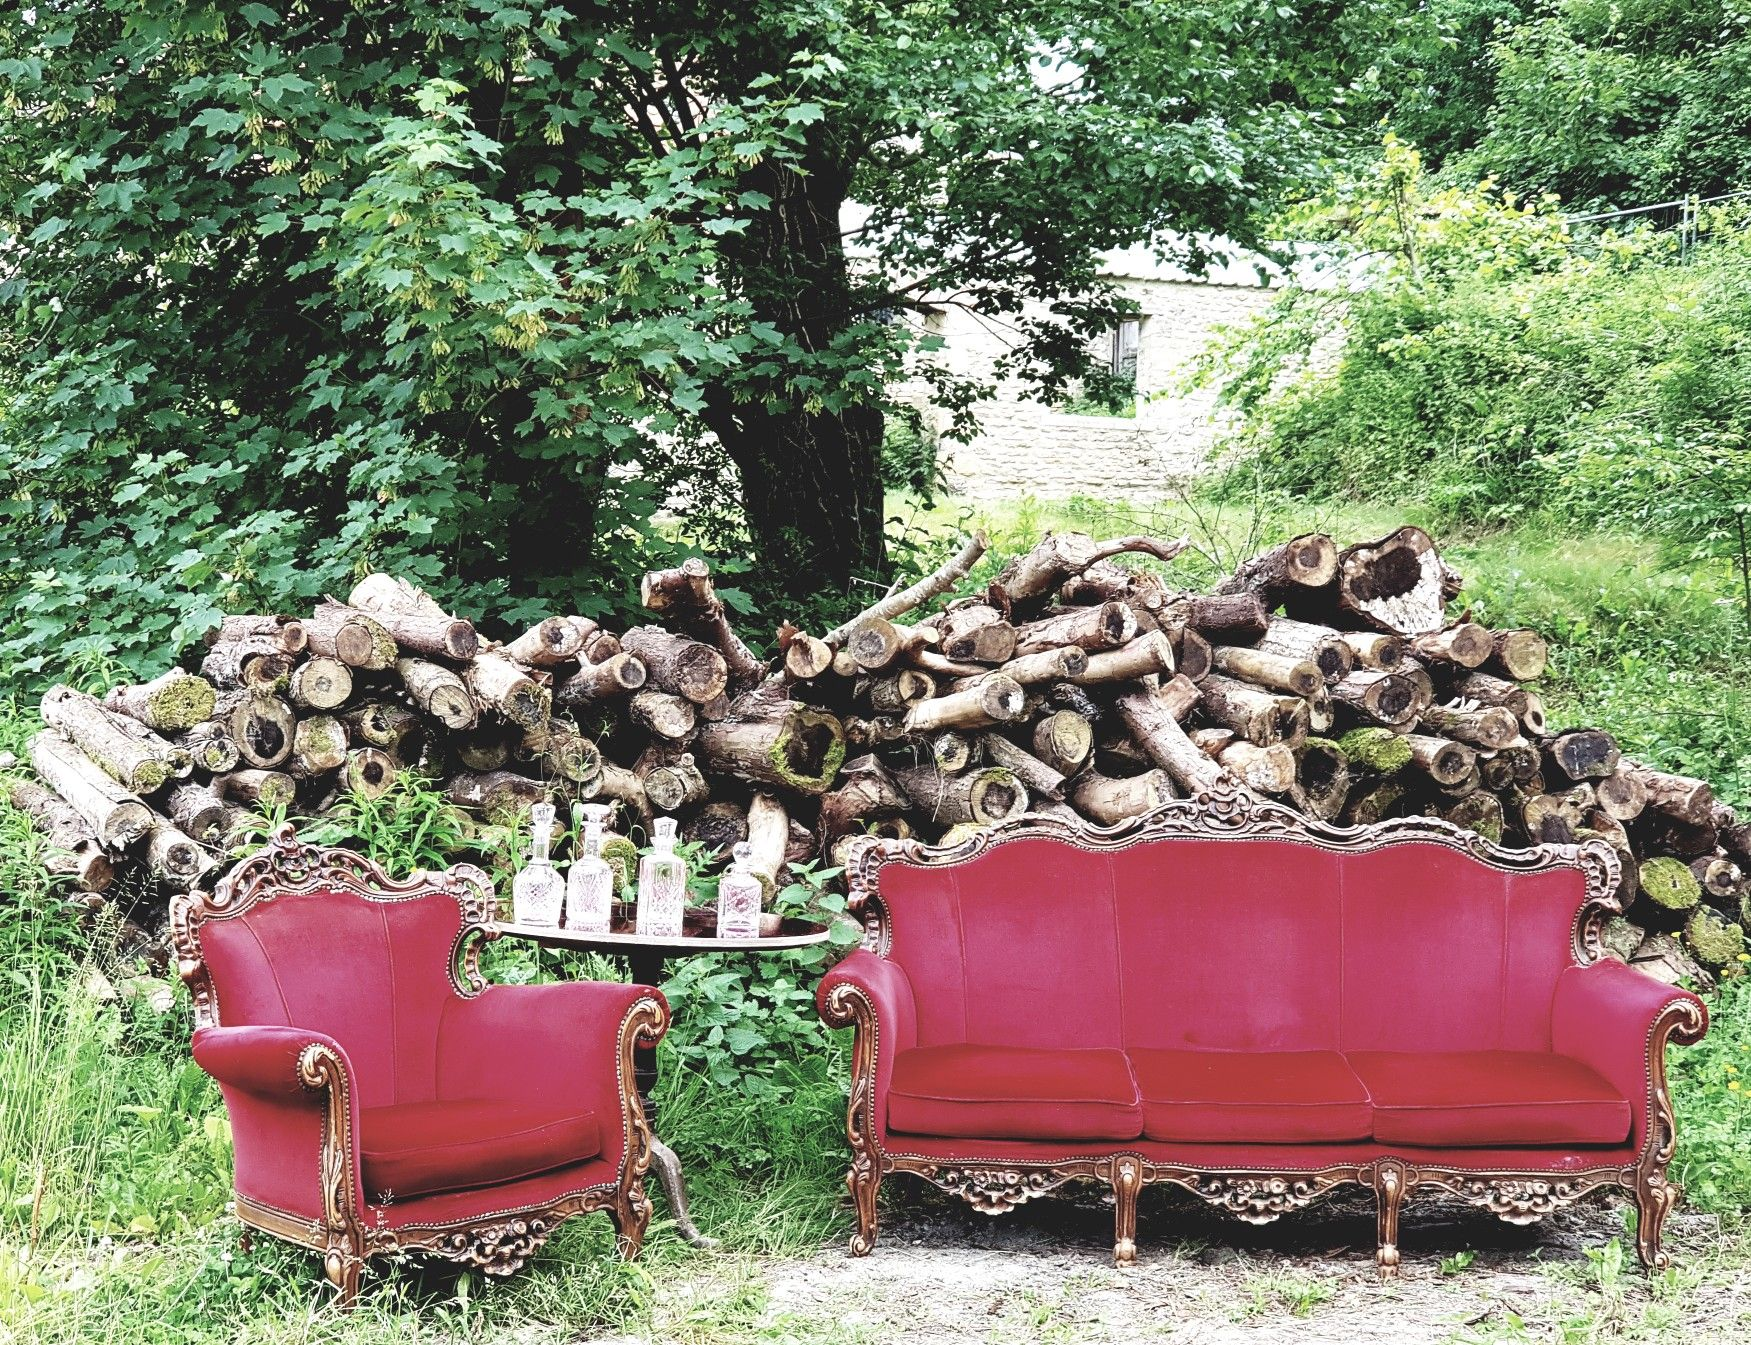 Alternative wedding styling baroque velvet sofa prop for hire for bohemian wedding or events in bristol and south west